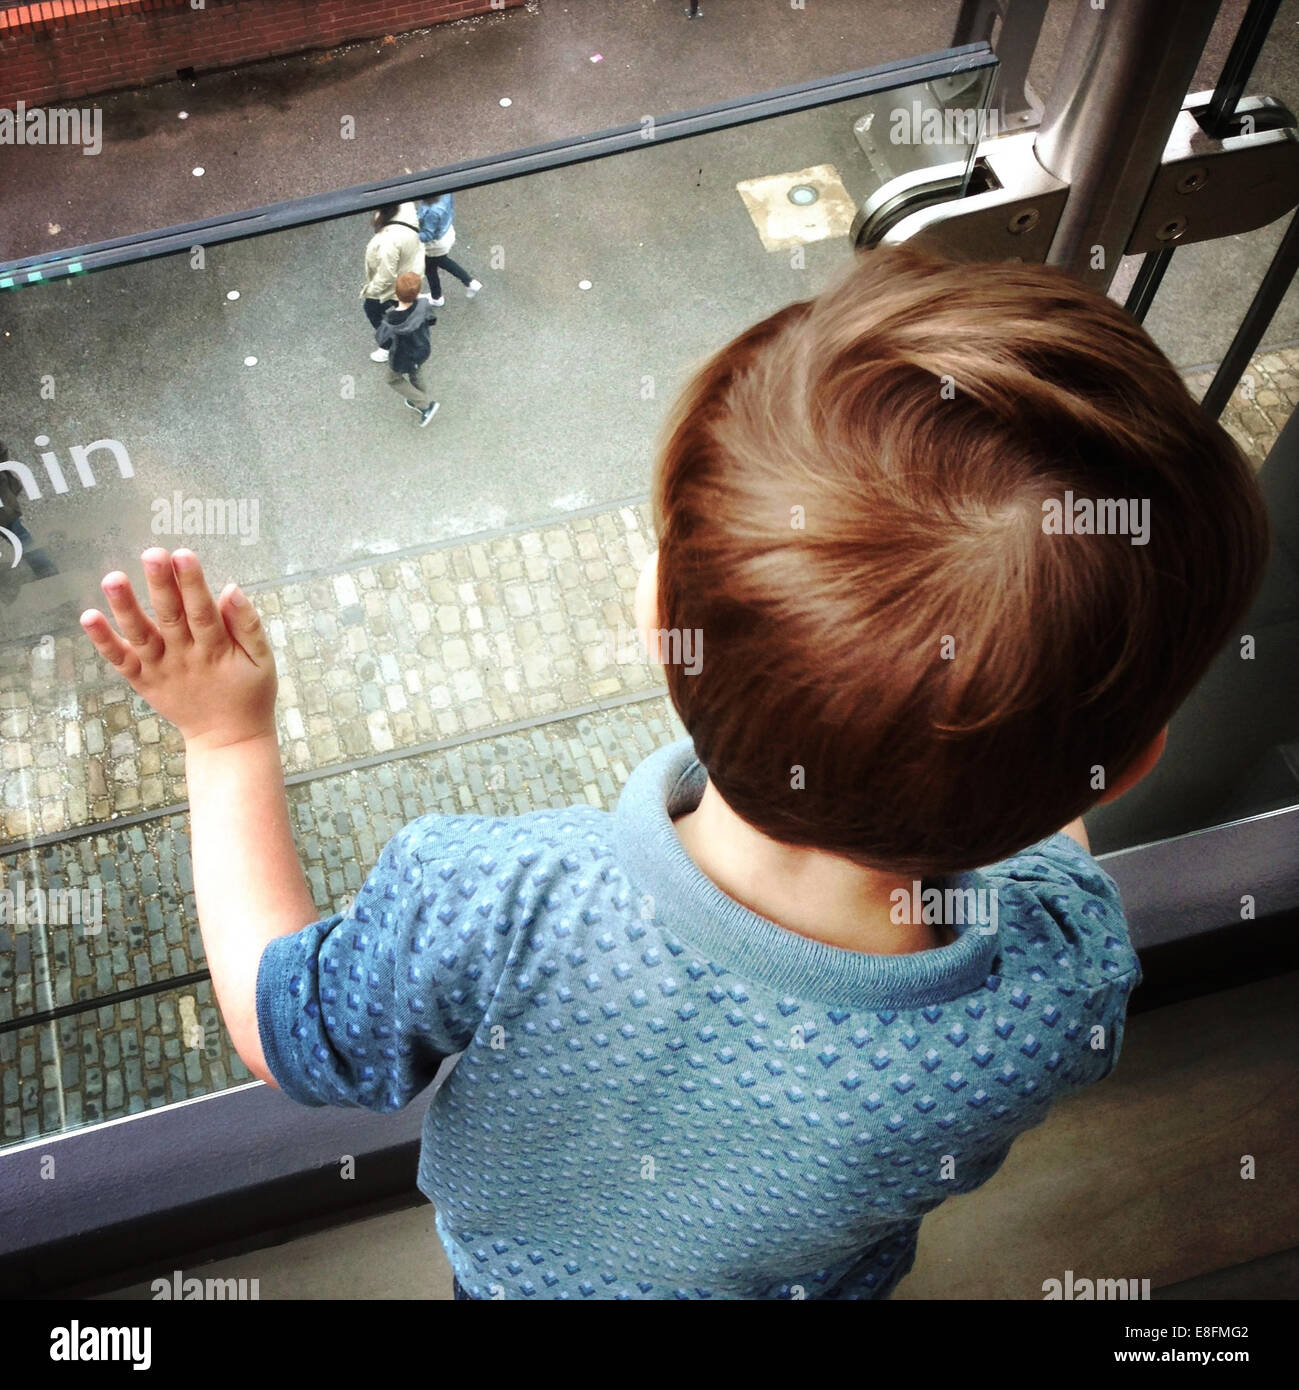 United Kingdom, England, Manchester, Child watching people from above - Stock Image